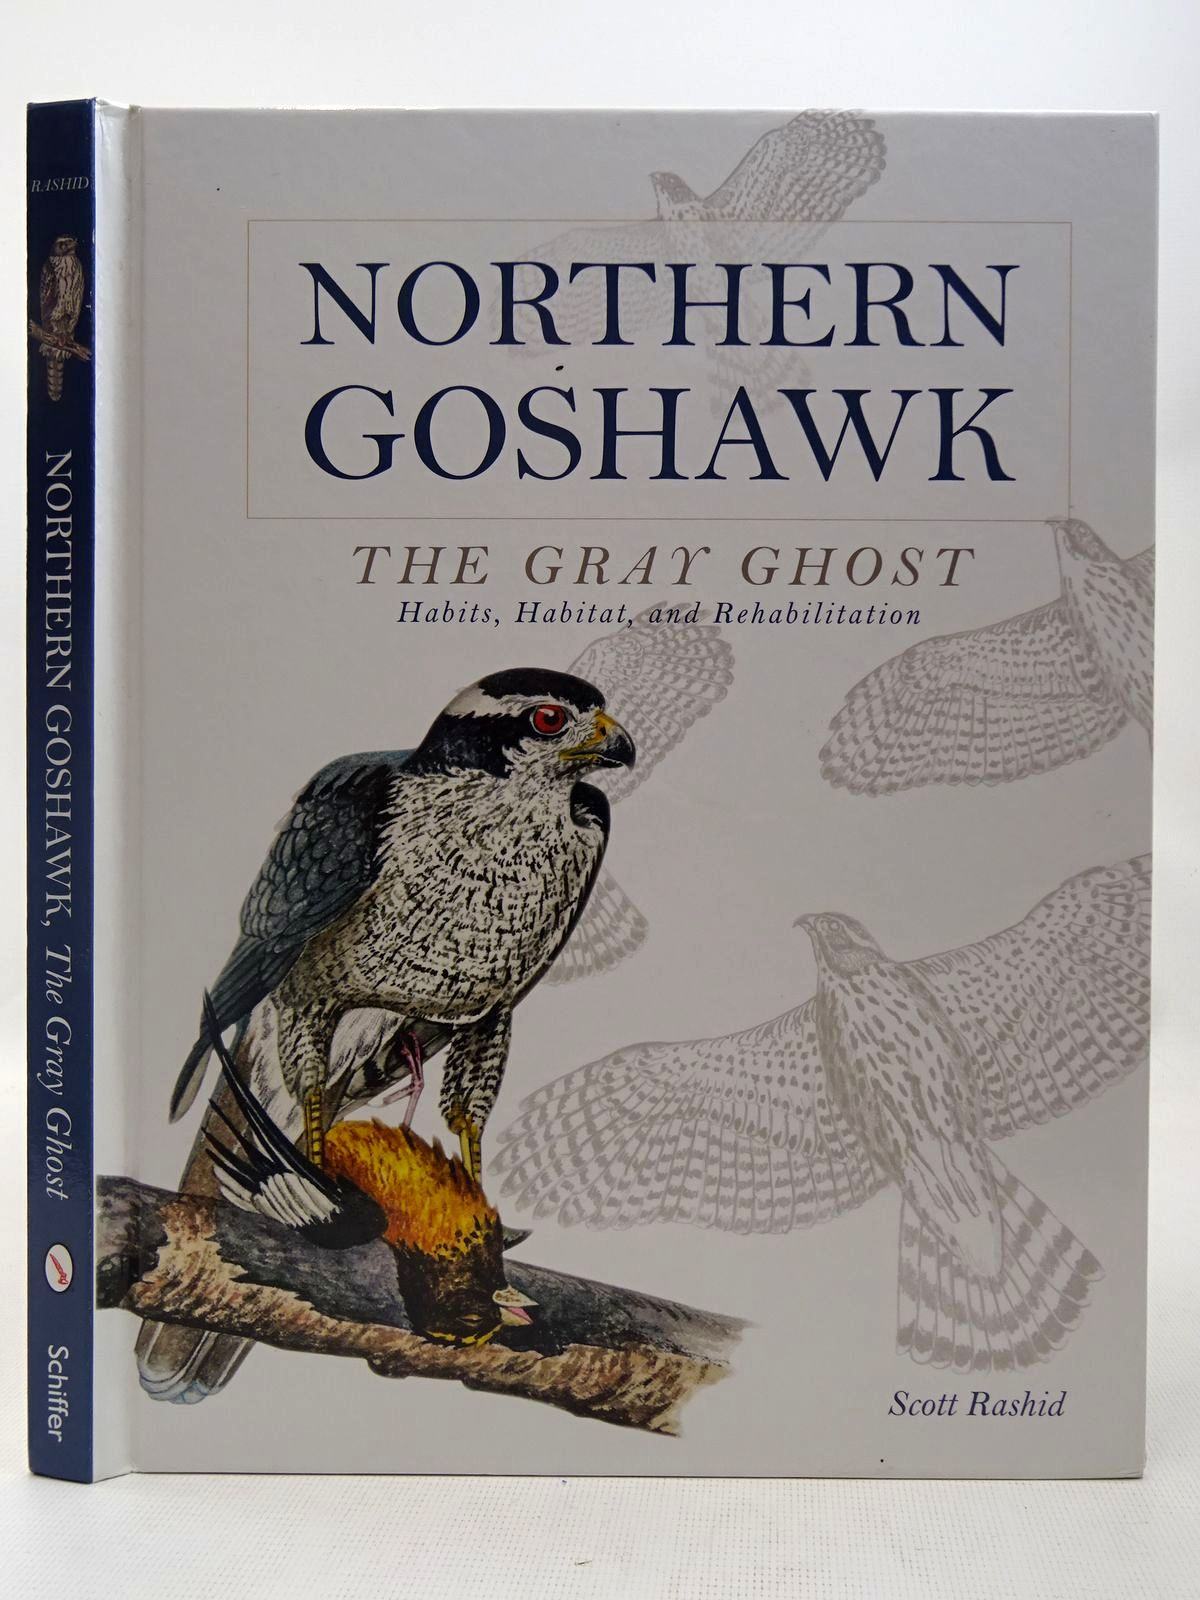 Photo of NORTHERN GOSHAWK THE GRAY GHOST written by Rashid, Scott illustrated by Rashid, Scott published by Schiffer Publishing Ltd. (STOCK CODE: 2127610)  for sale by Stella & Rose's Books